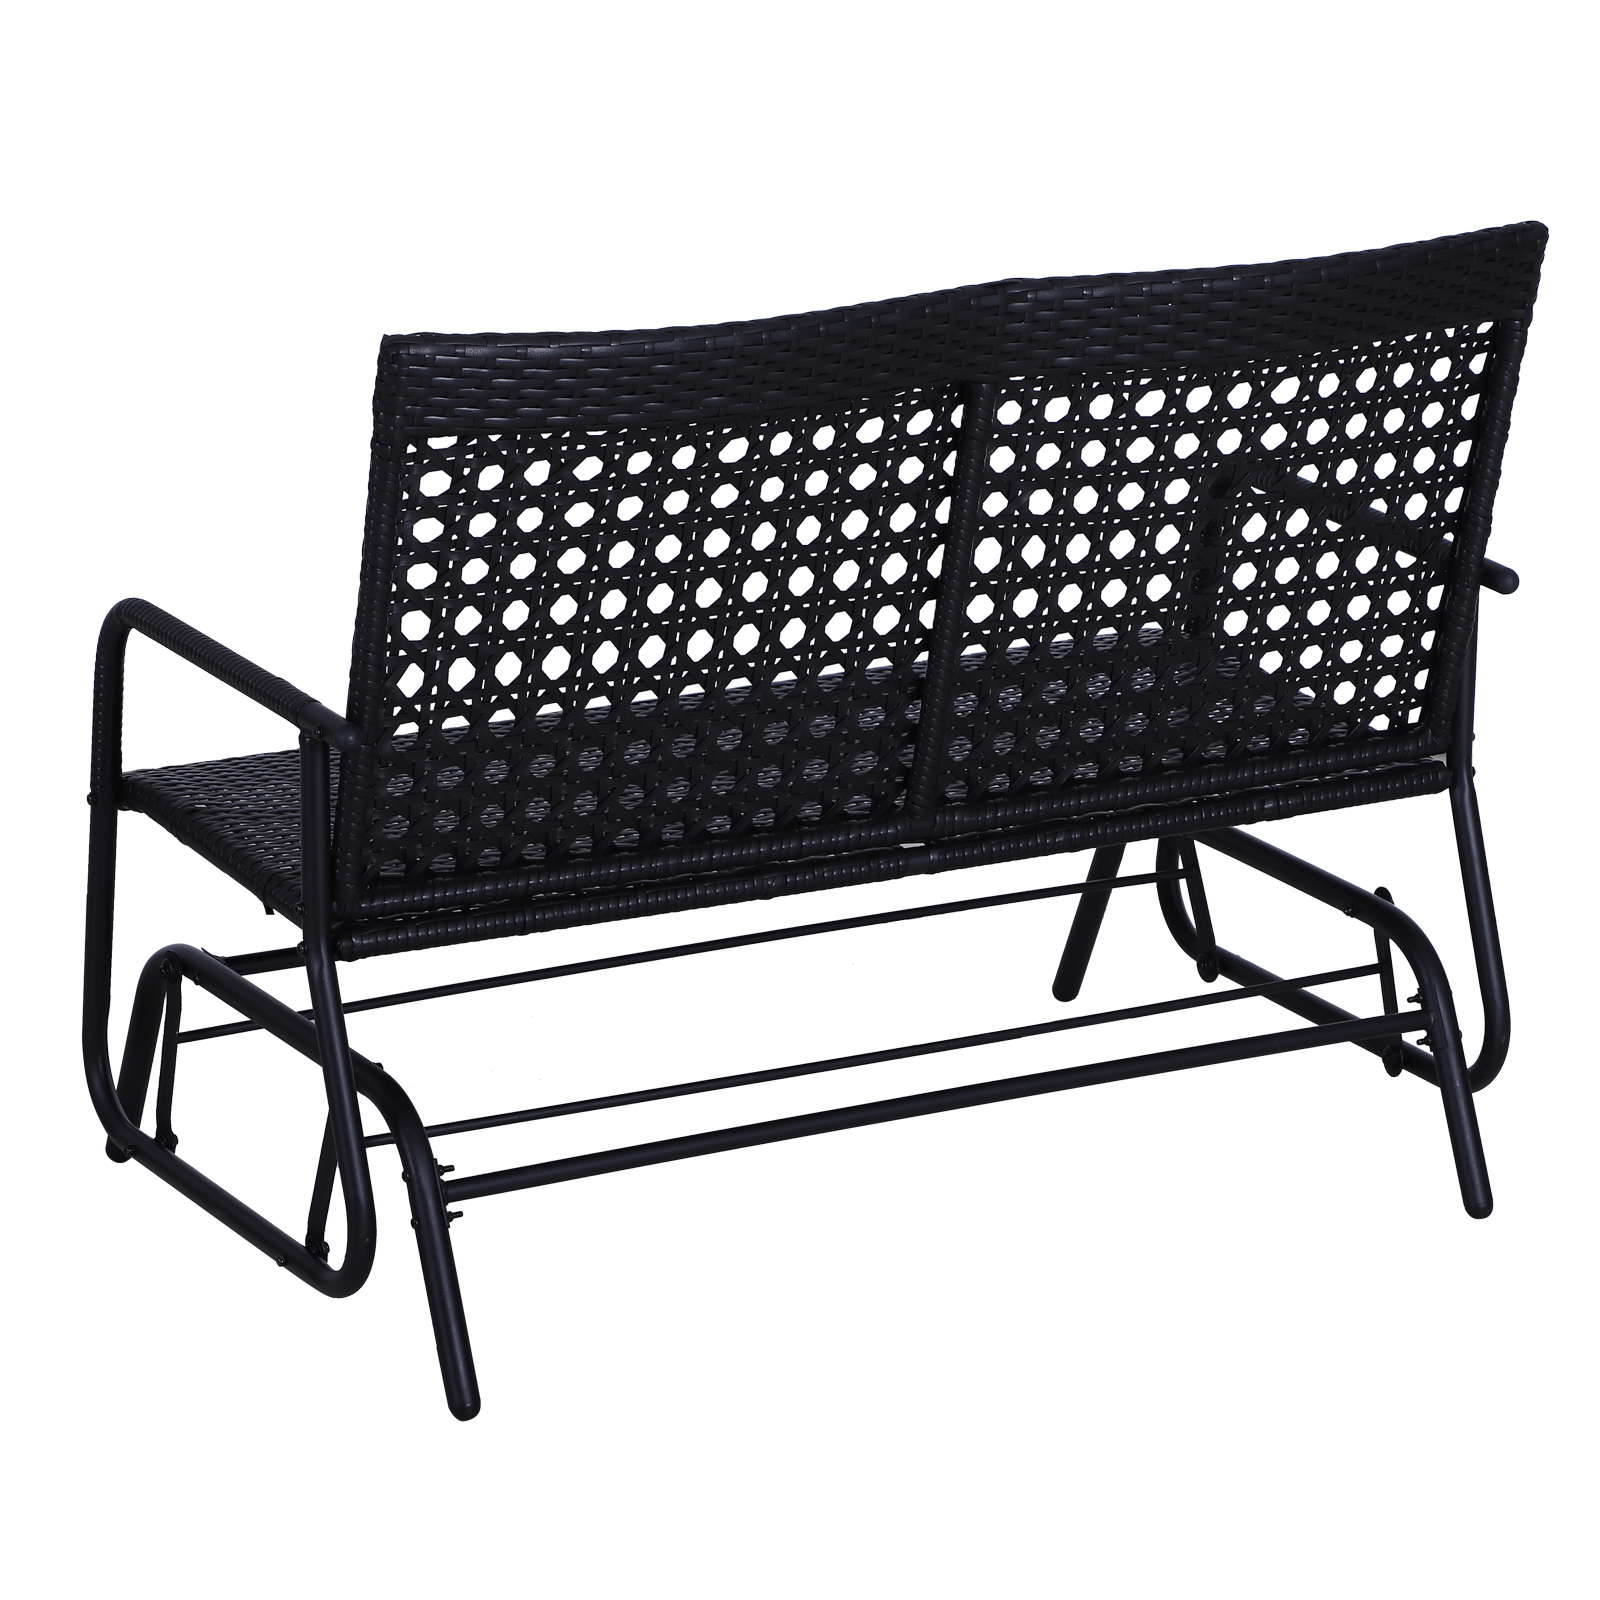 Outsunny-47x3x35inch-Garden-Bench-Wicker-Glider-Swing-Chair-Black thumbnail 4